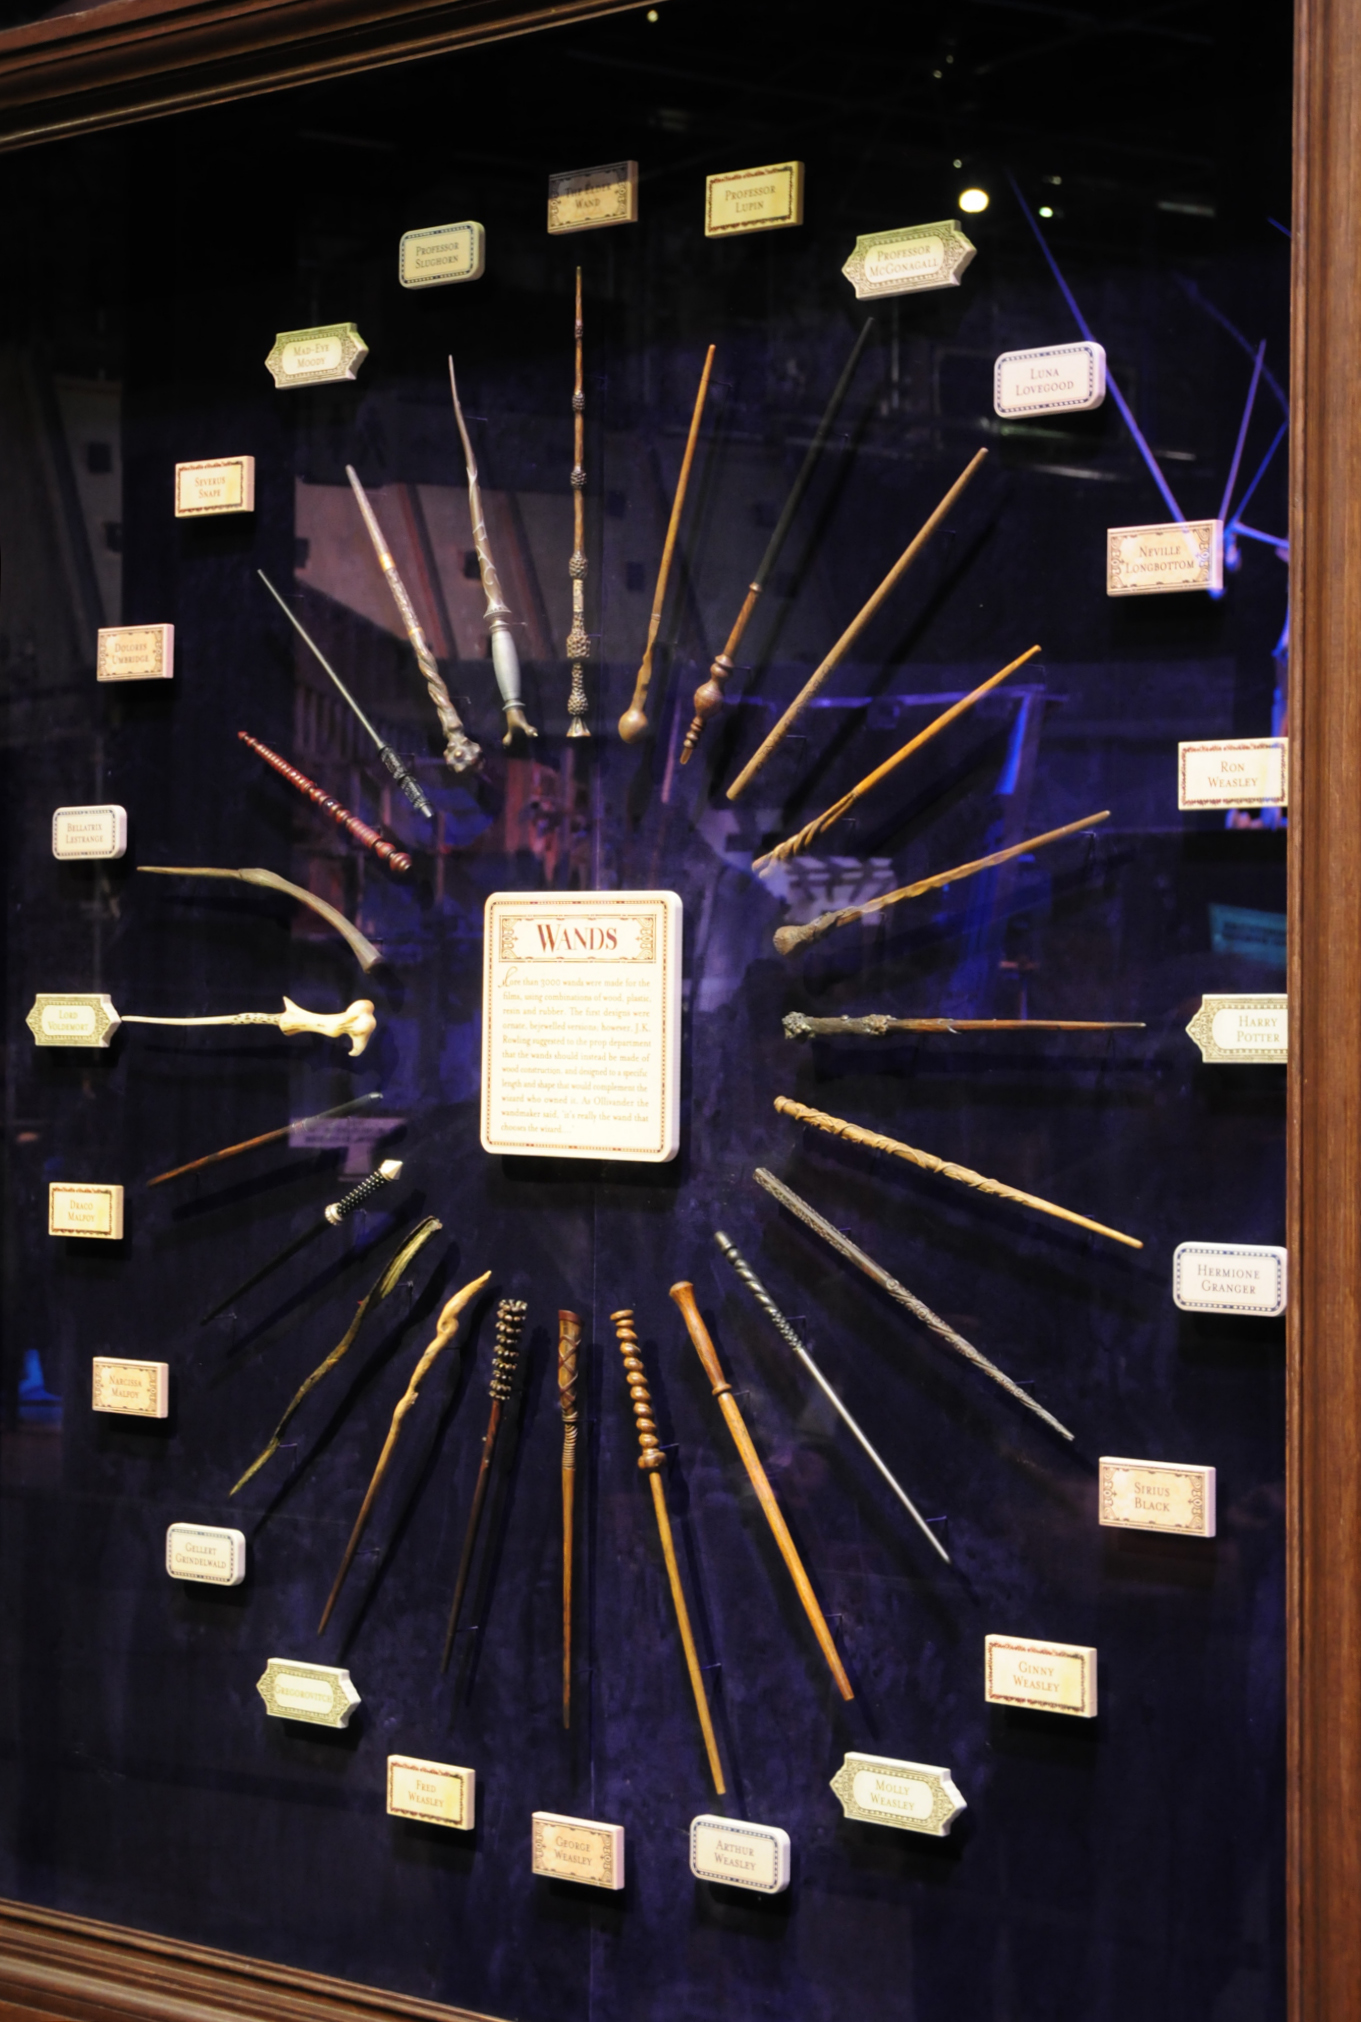 Harry Potter Display Harry Potter Magic Wands In Display Case Harry Potter